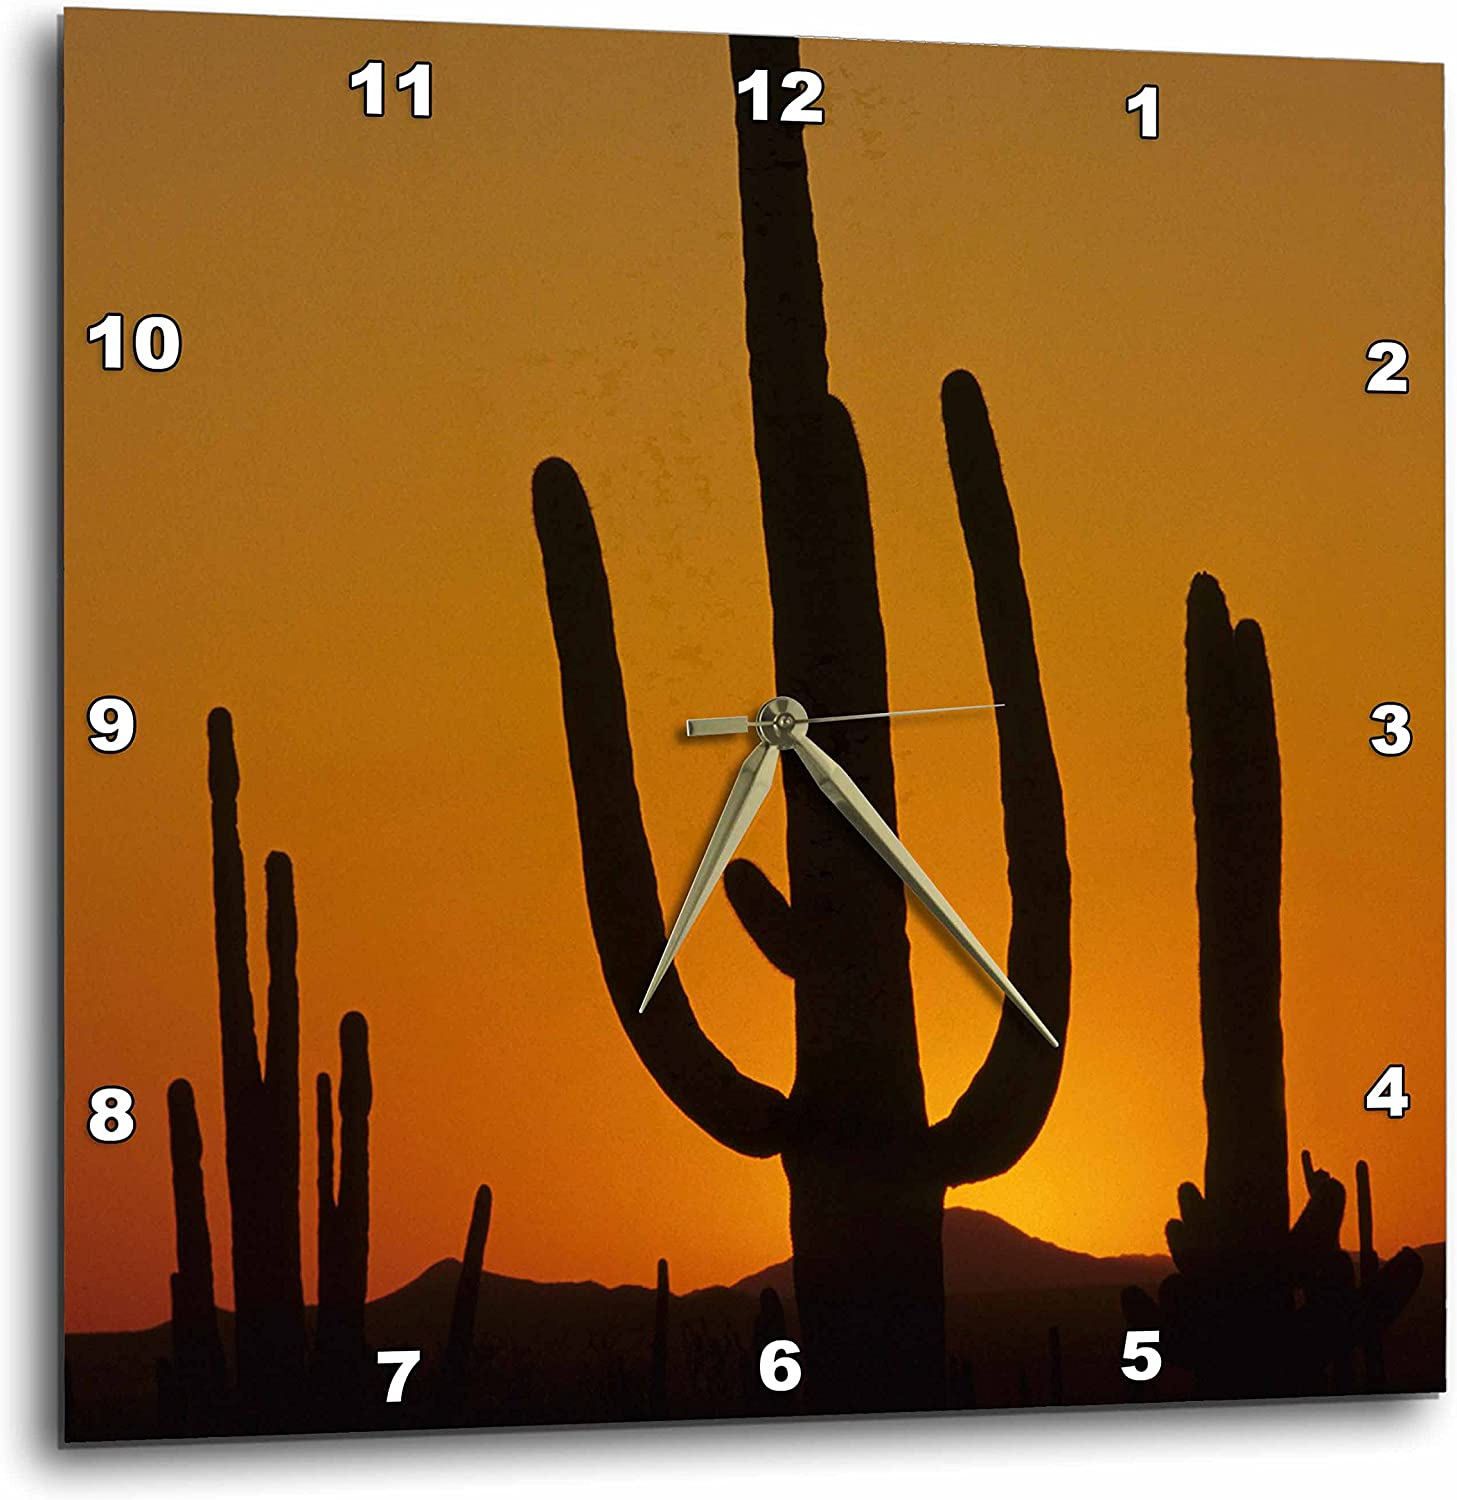 3dpink DPP_87957_2 Giant Saguaro Cactus Succulent, Arizona-Us03 Jme0107-John and Lisa Merrill-Wall Clock, 13 by 13-Inch